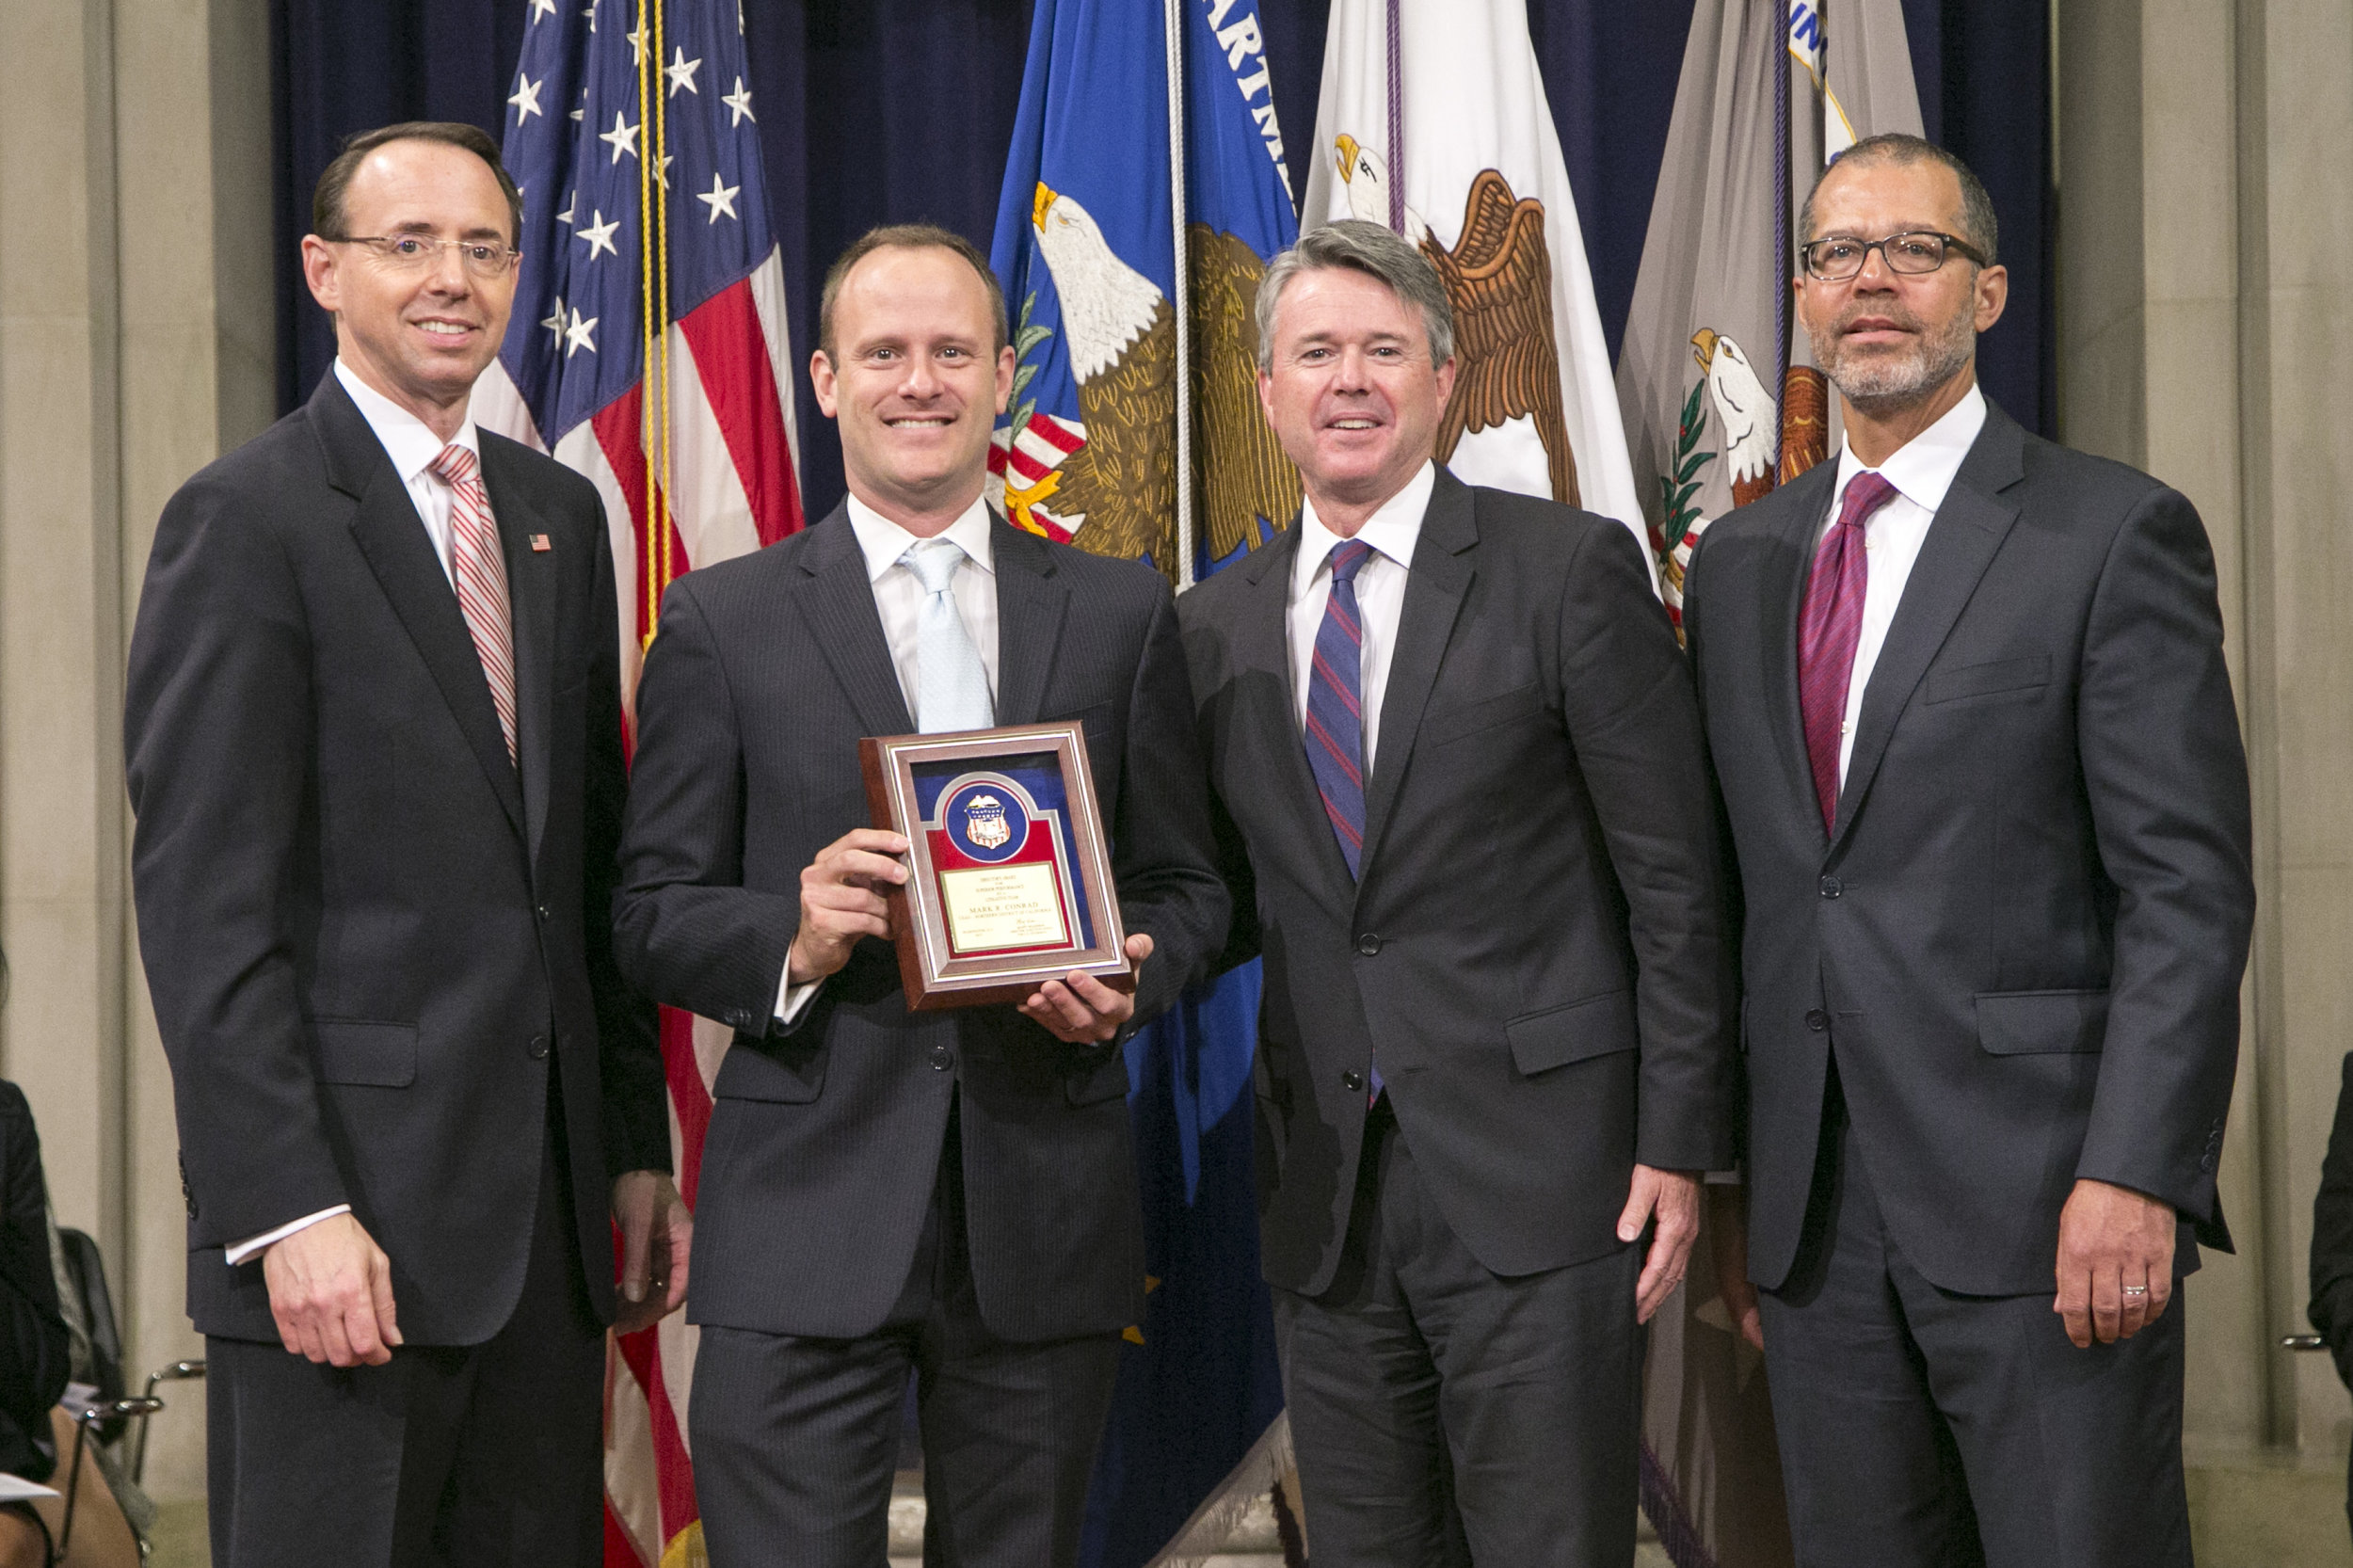 From left: Rod Rosenstein, Deputy Attorney General; Mark Conrad; Brian Stretch,  U.S. Attorney for the Northern District of California; Monty Wilkinson, Director of the Executive Office for United States Attorneys